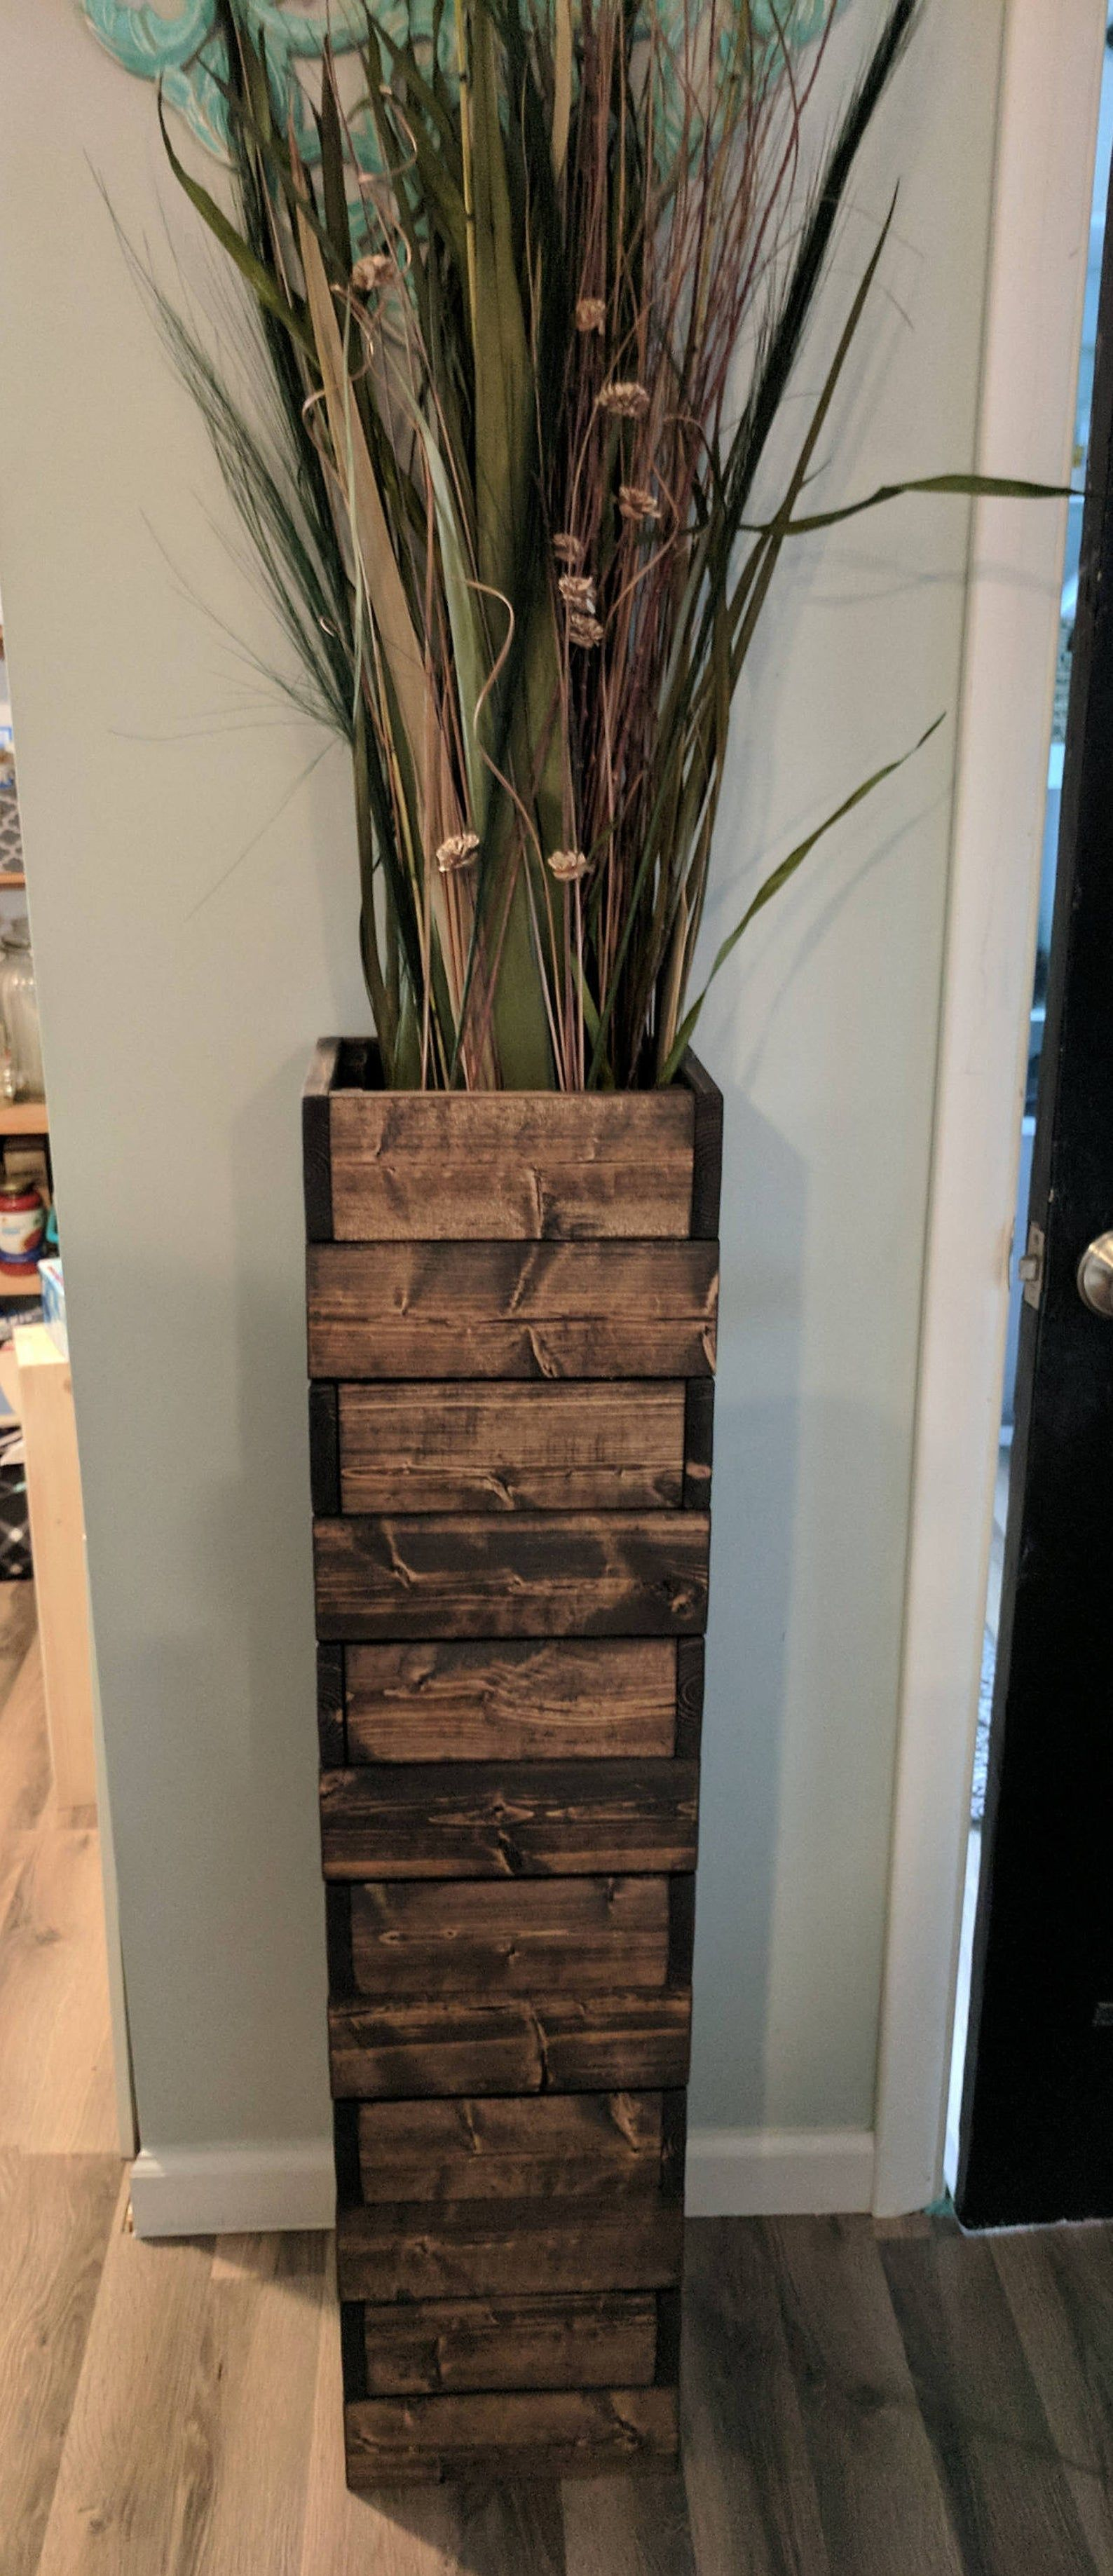 Tall Stacked Rustic Floor Vase Wooden Vase Home Etsy In 2020